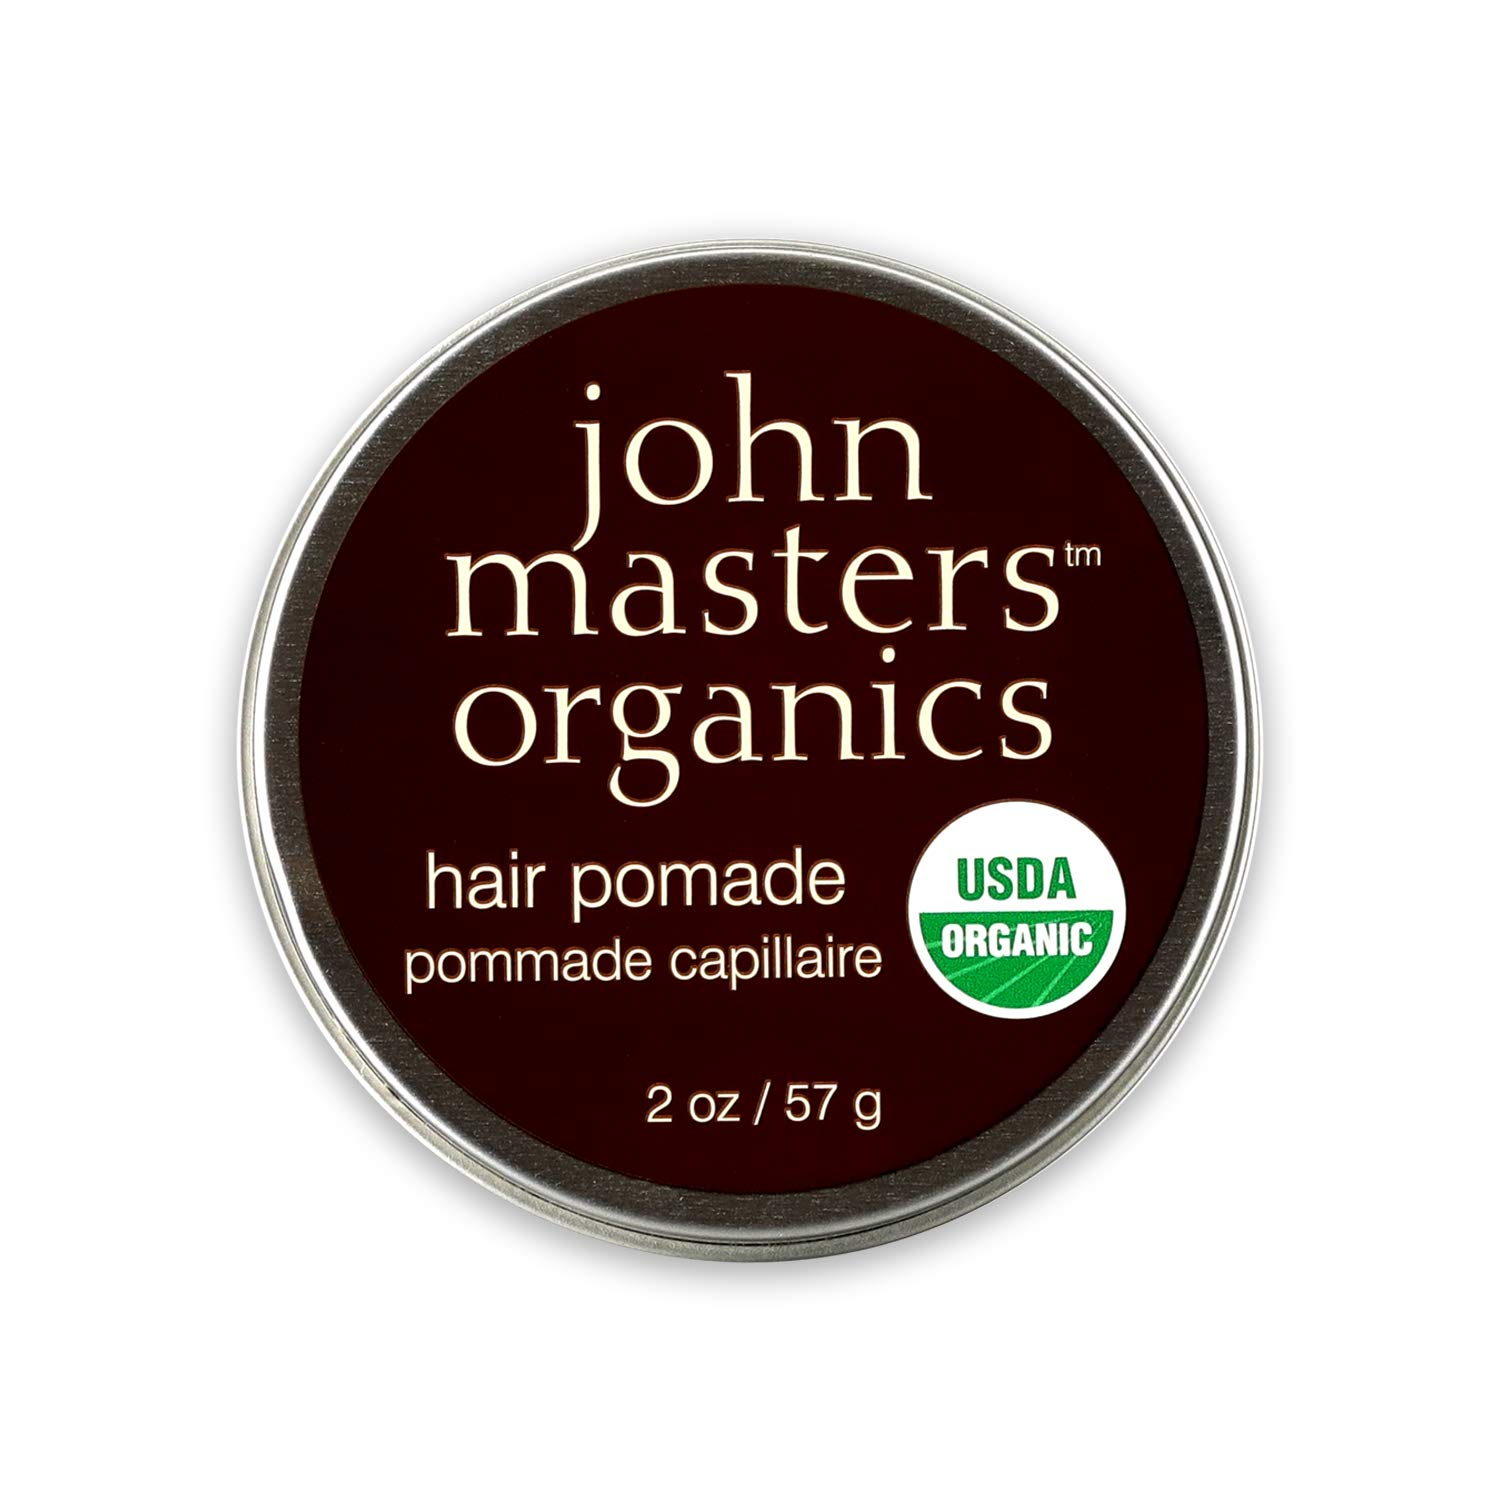 John Masters Organics - Hair Pomade - USDA Certified Organic All Natural Hair Styling Product for Men & Women, Heat Protectant with Beeswax & Mango Butter - Petroleum Free - 2 oz